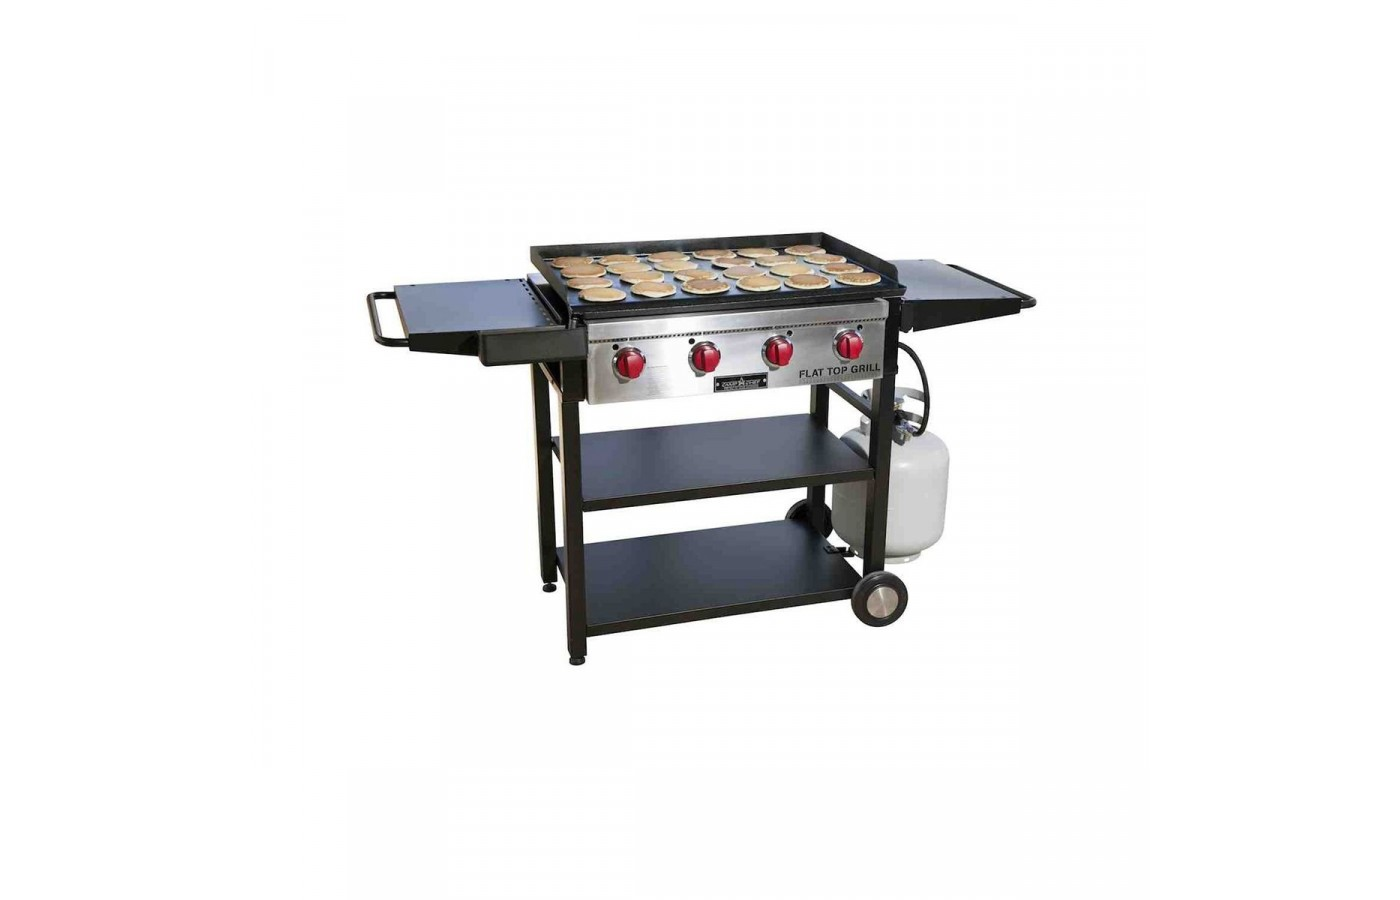 You will have an easy time using this grill.